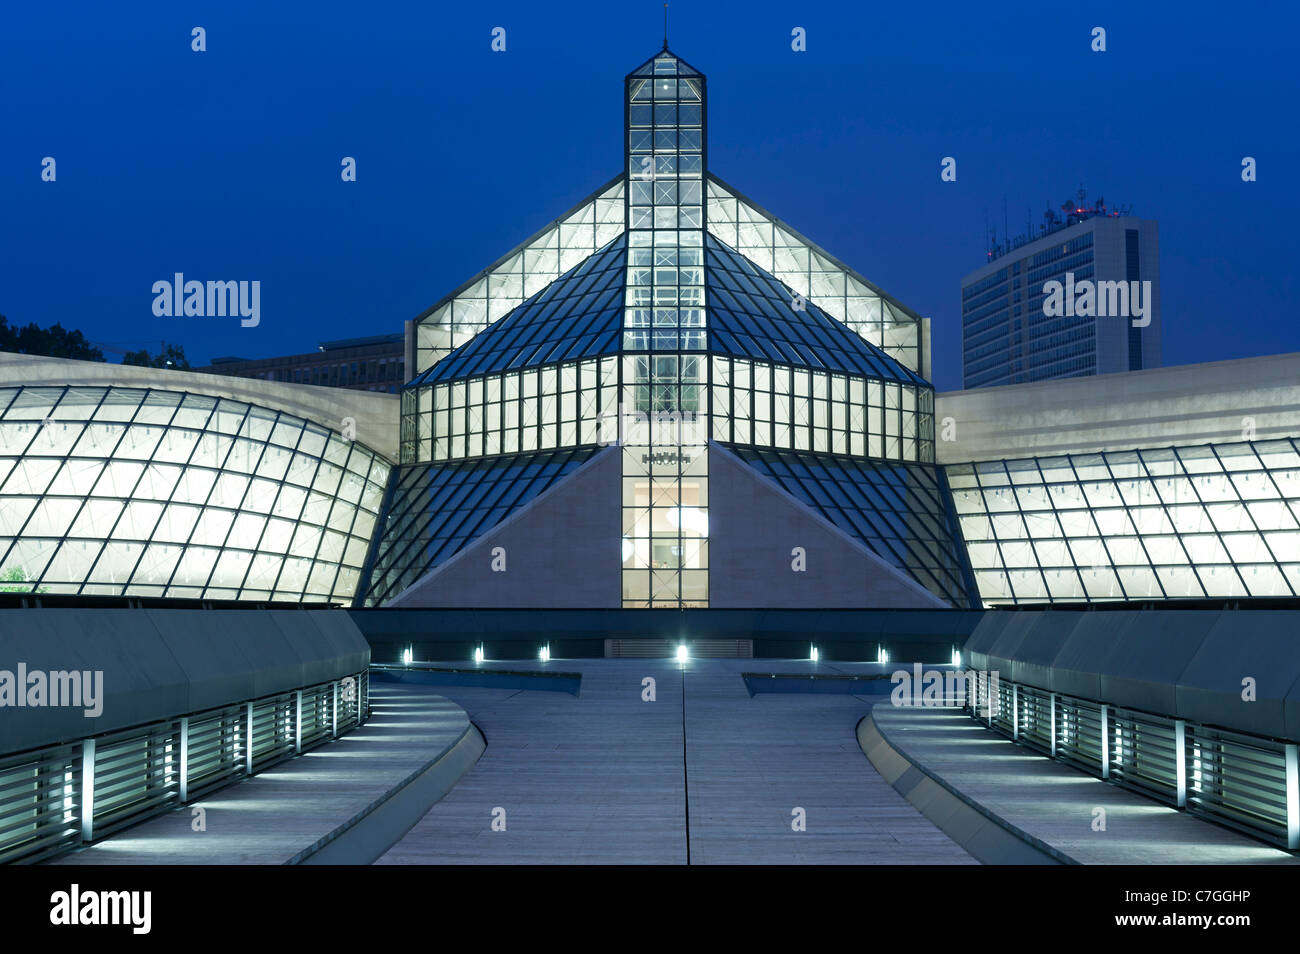 Luxembourg city the mudam grand duke jean museum of modern arts stock photo 39087602 alamy - Architekt luxemburg ...